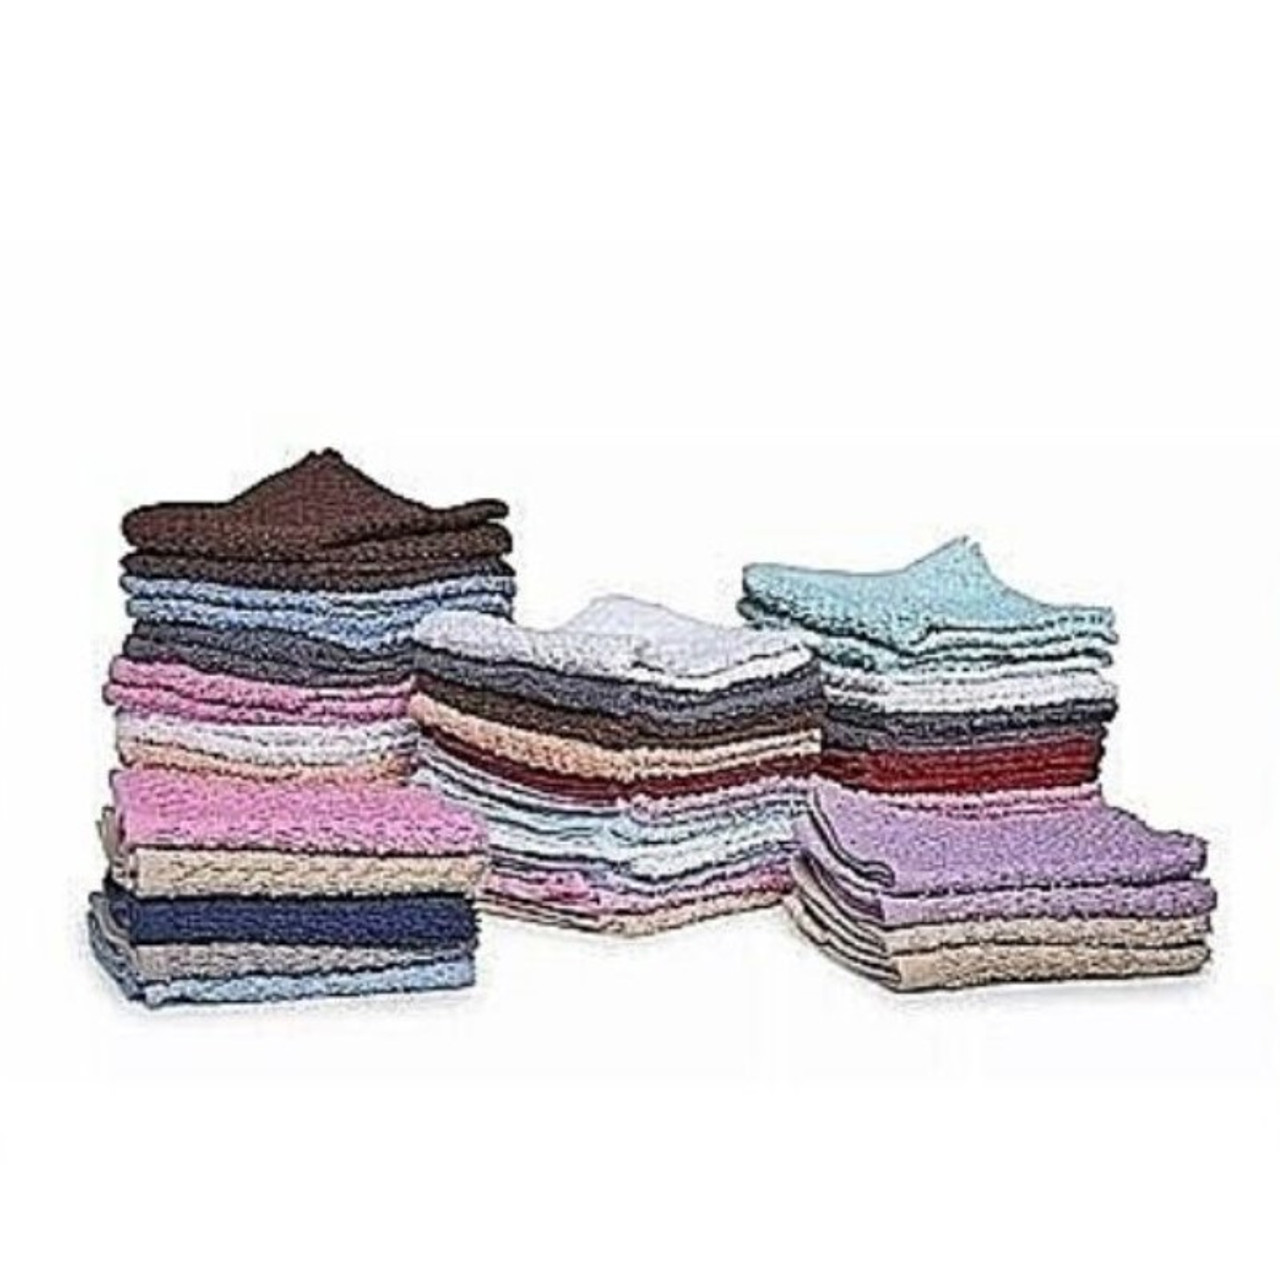 Absorbent 100% Cotton Face Wash Cloths - Assorted 12 or 24 Pack